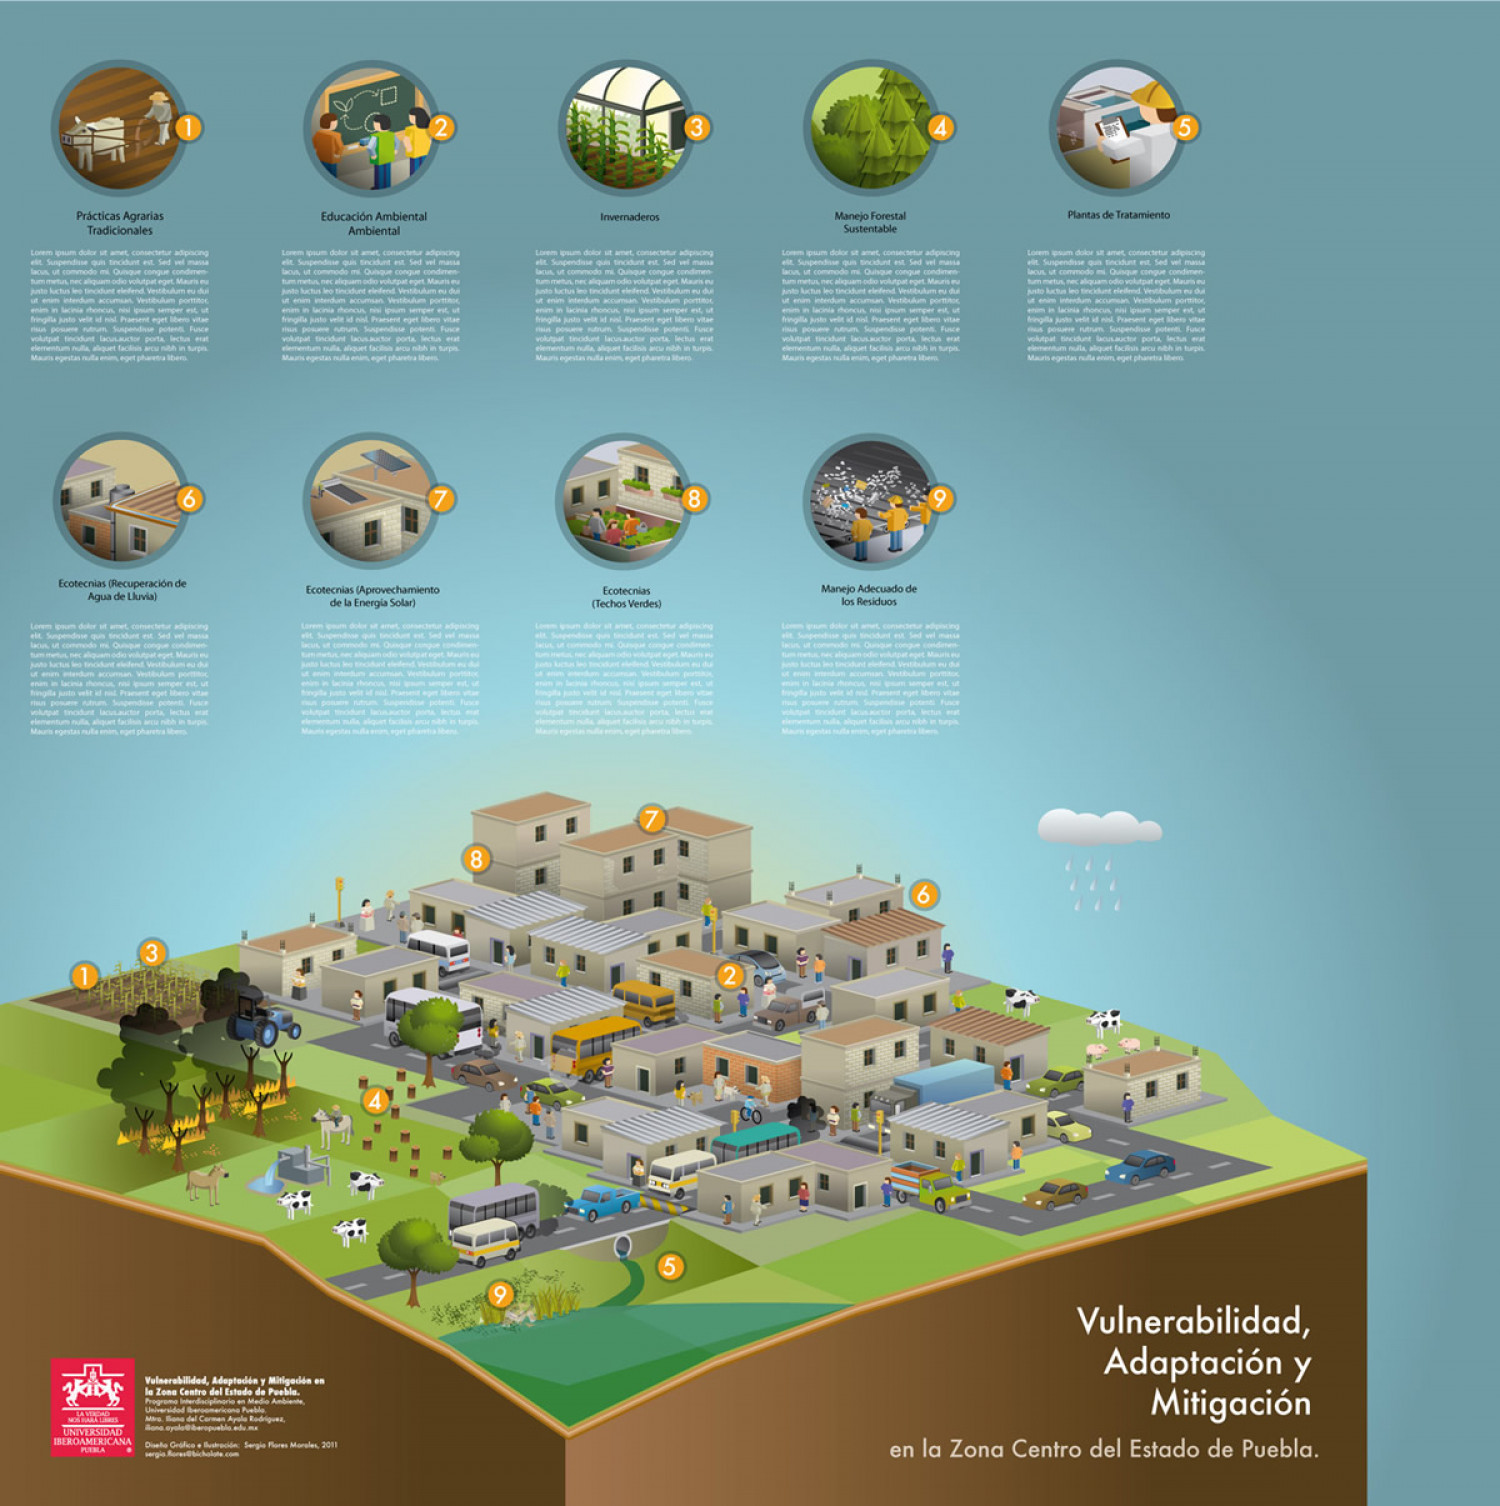 Vulnerability, adaptation, mitigation, semi-urban Infographic